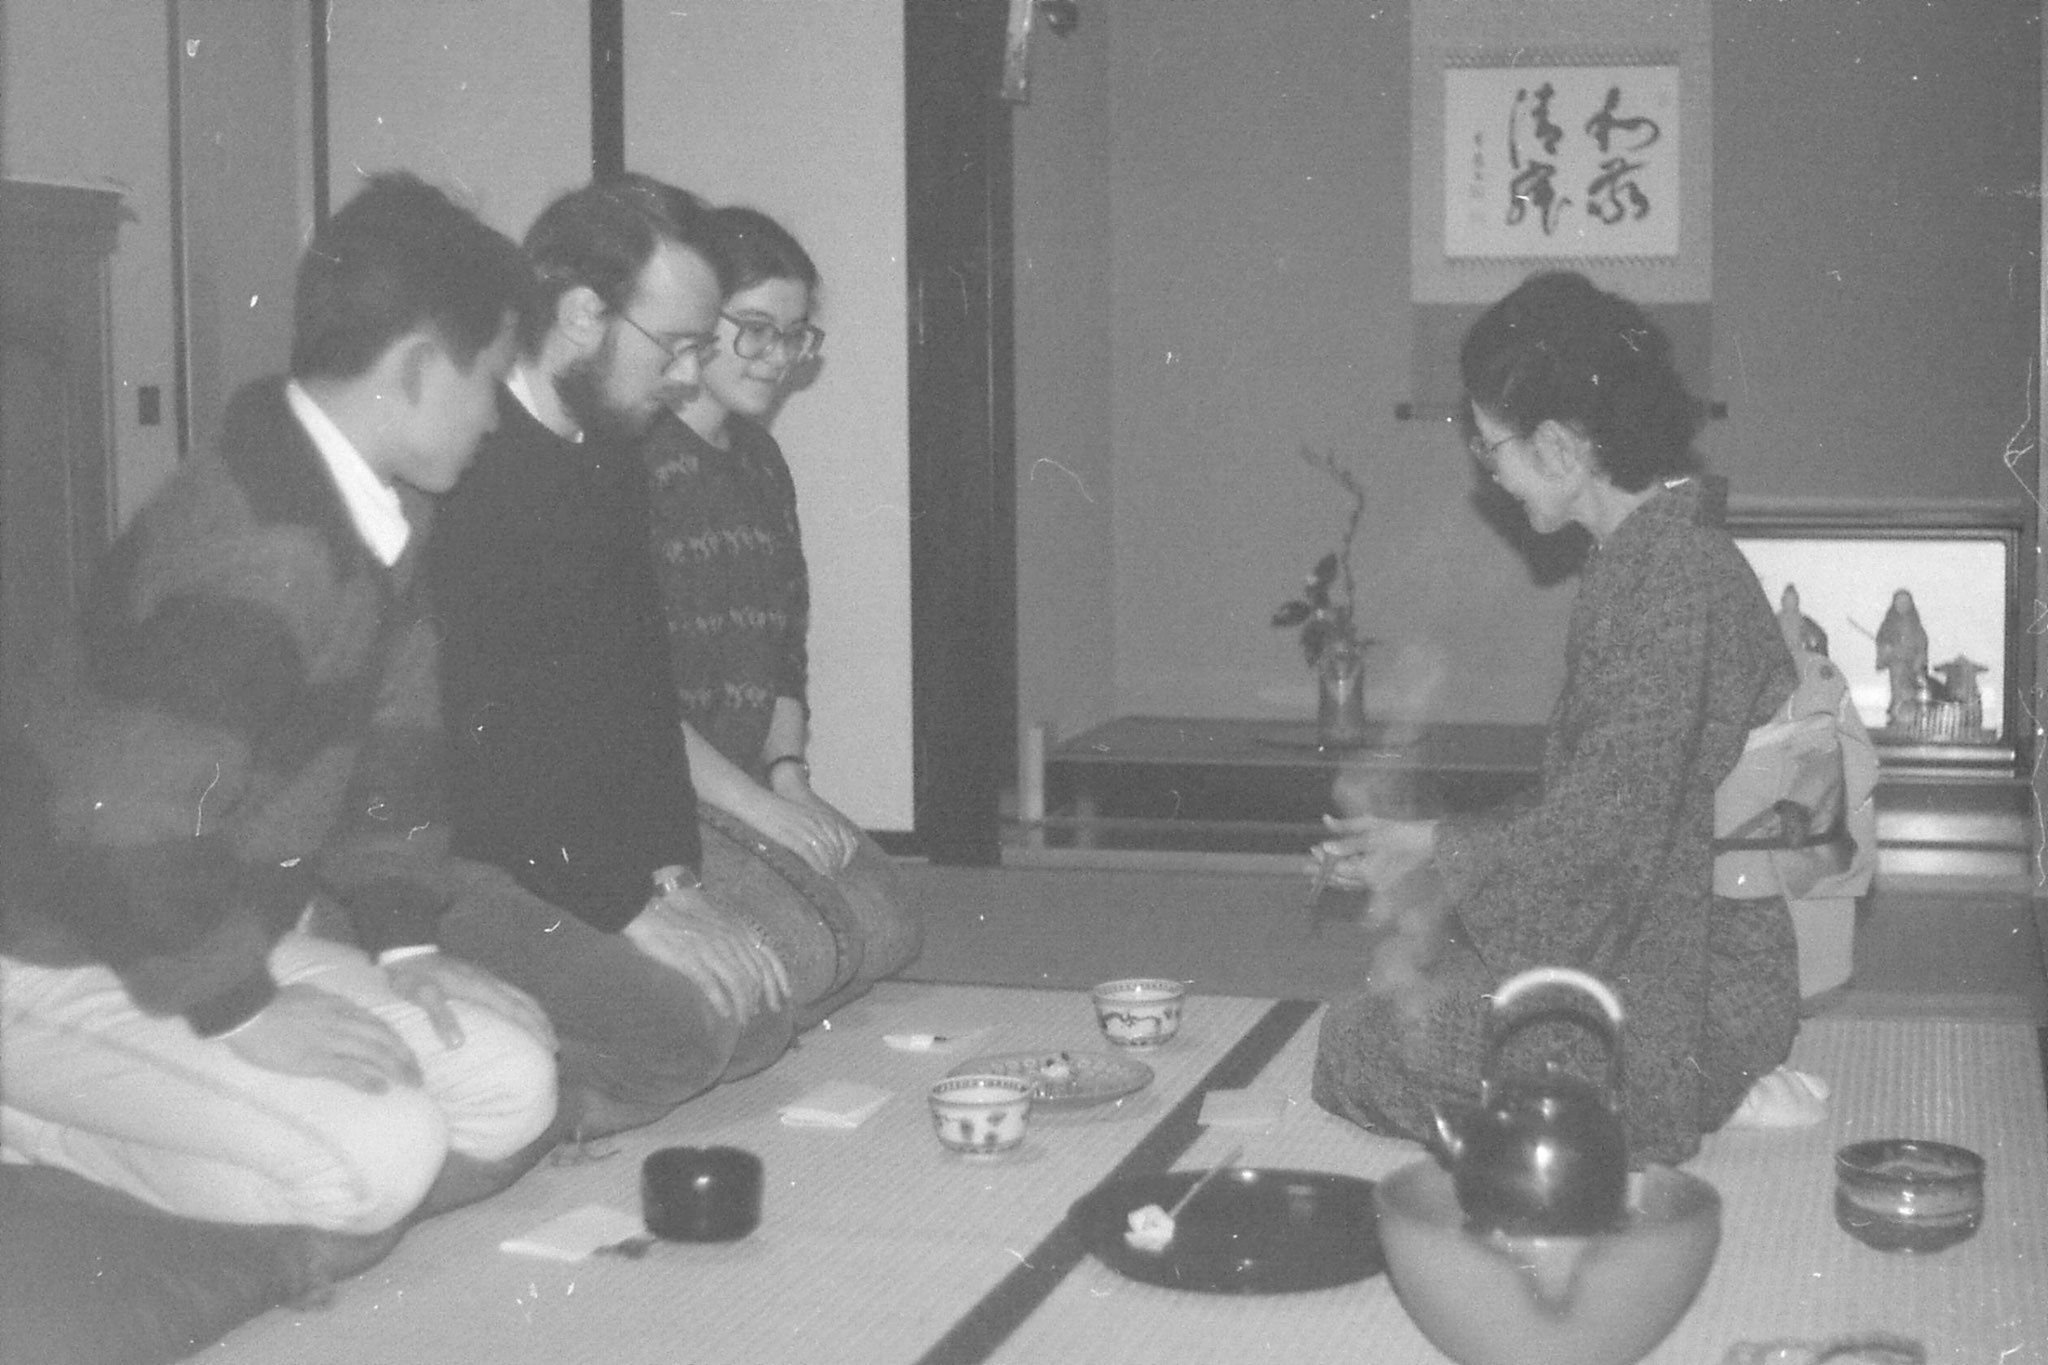 27/1/1989: 21:tea ceremony at neighbour's